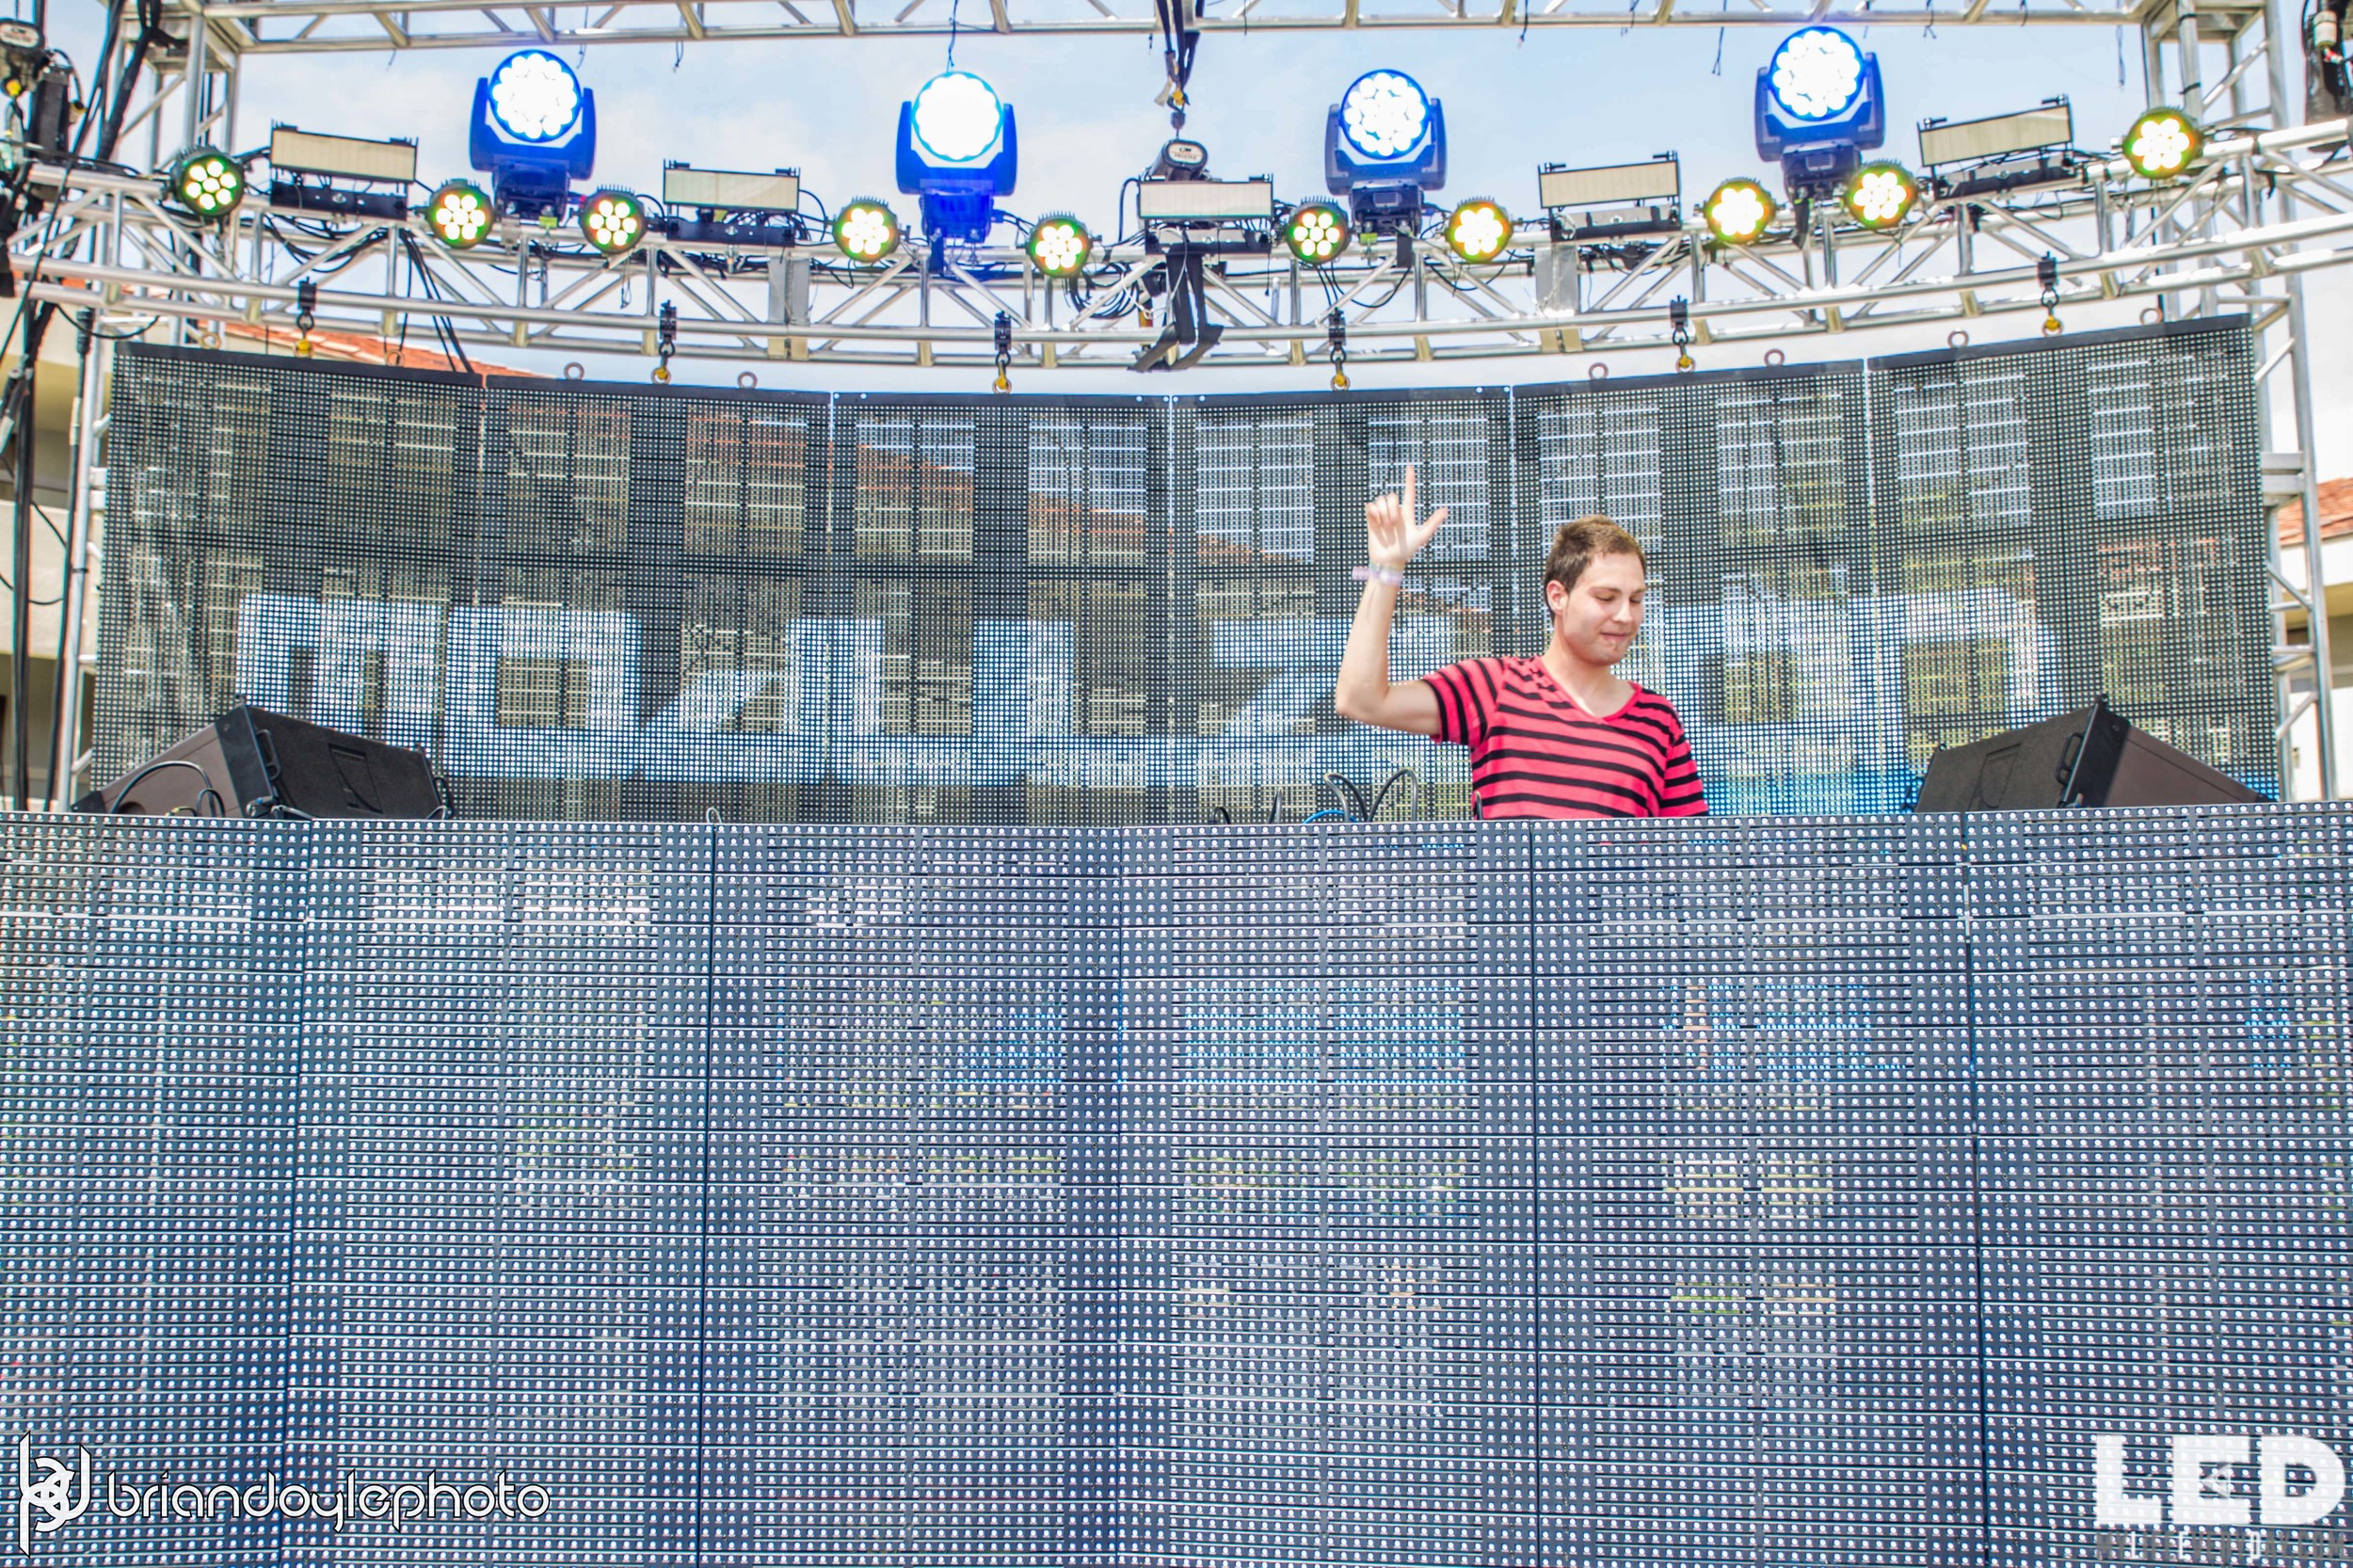 LED Day Club Day 2  Deorro and Chris 04.10.2015-3.jpg